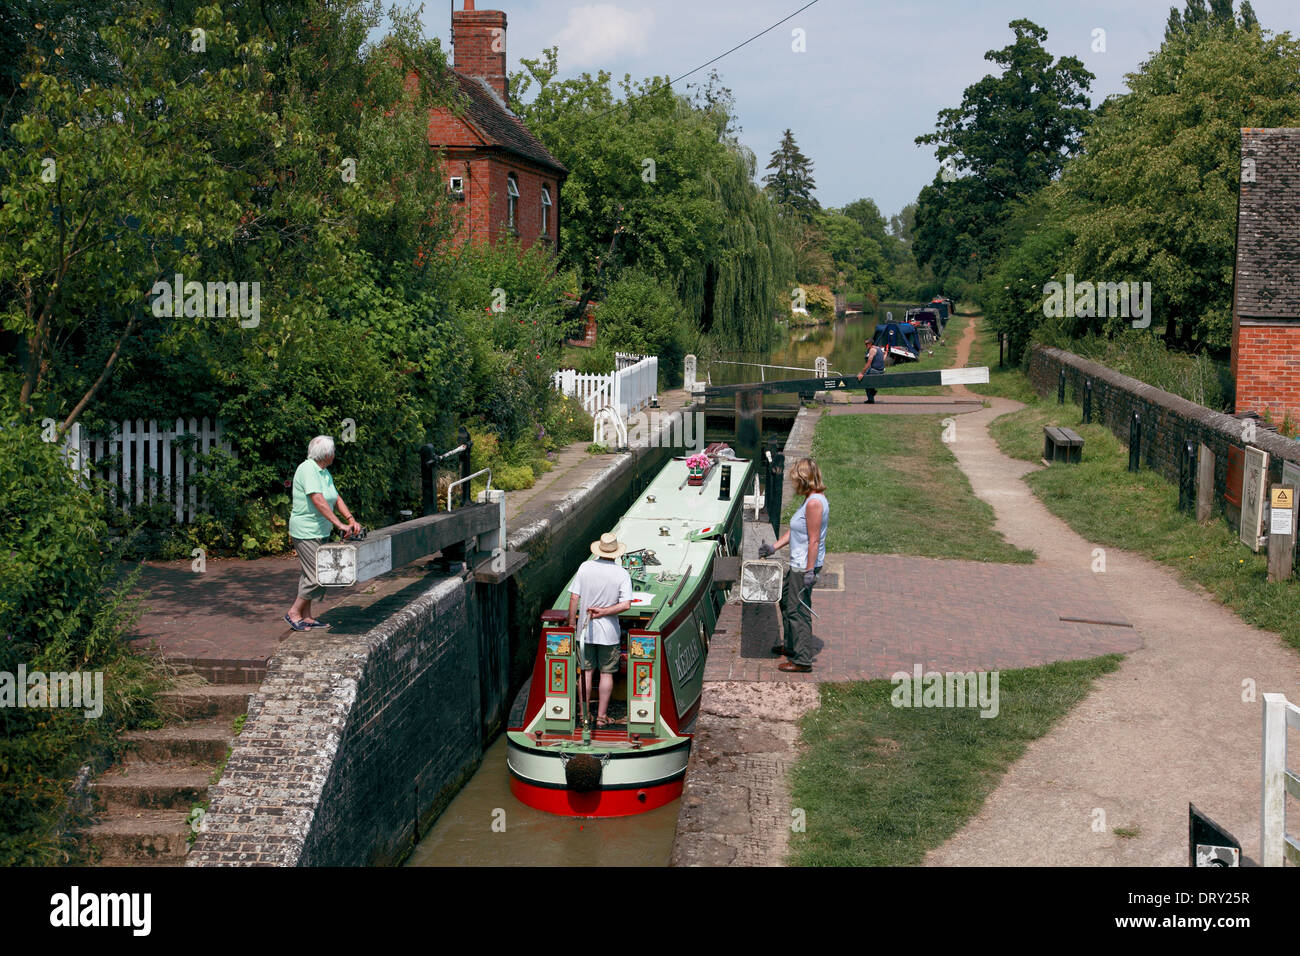 A narrowboat entering Cropredy Lock and about to go under Cropredy Lock Bridge on the Oxford Canal in Cropredy, - Stock Image